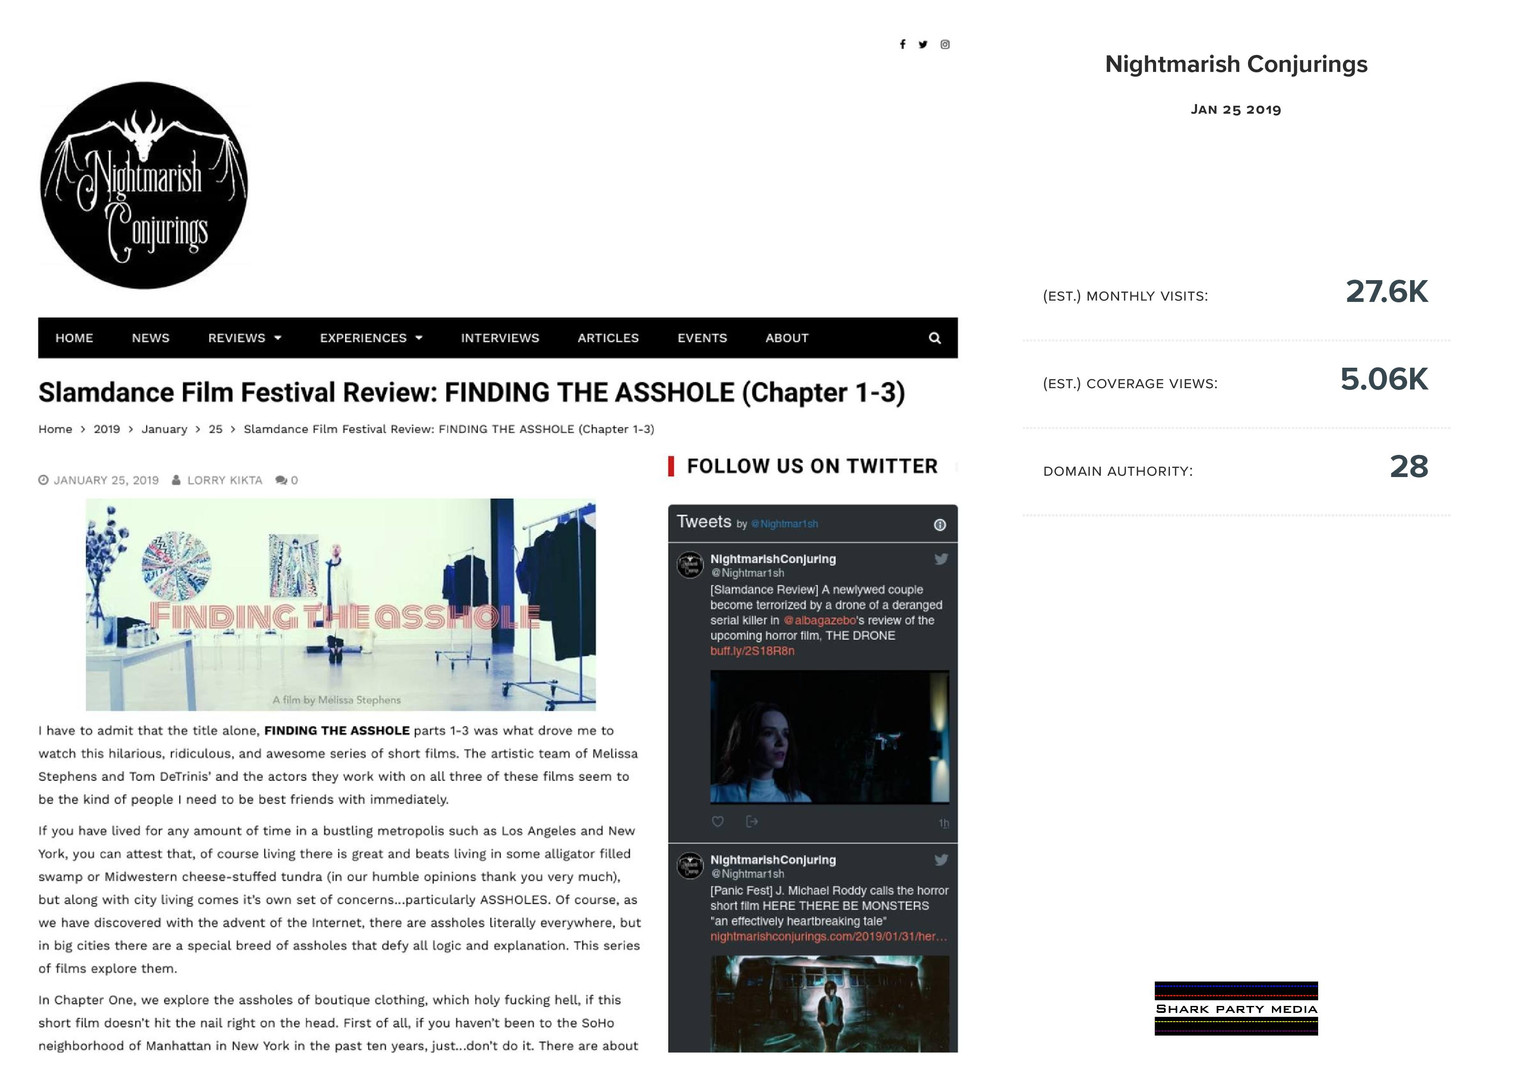 finding_the_asshole-press-page-007.jpg